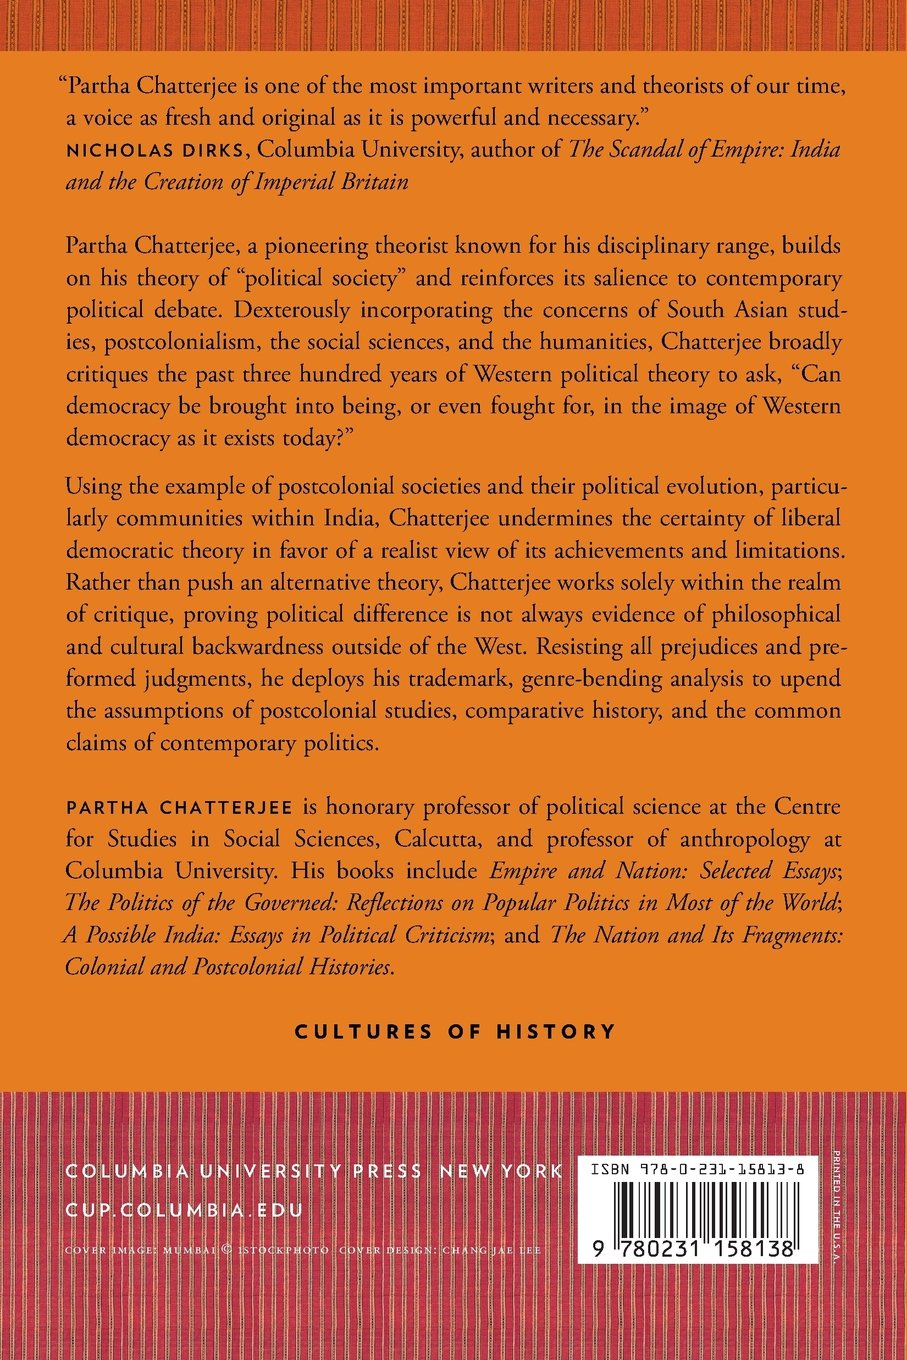 Lineages of Political Society: Studies in Postcolonial Democracy (Cultures  of History): Partha Chatterjee: 9780231158138: Amazon.com: Books